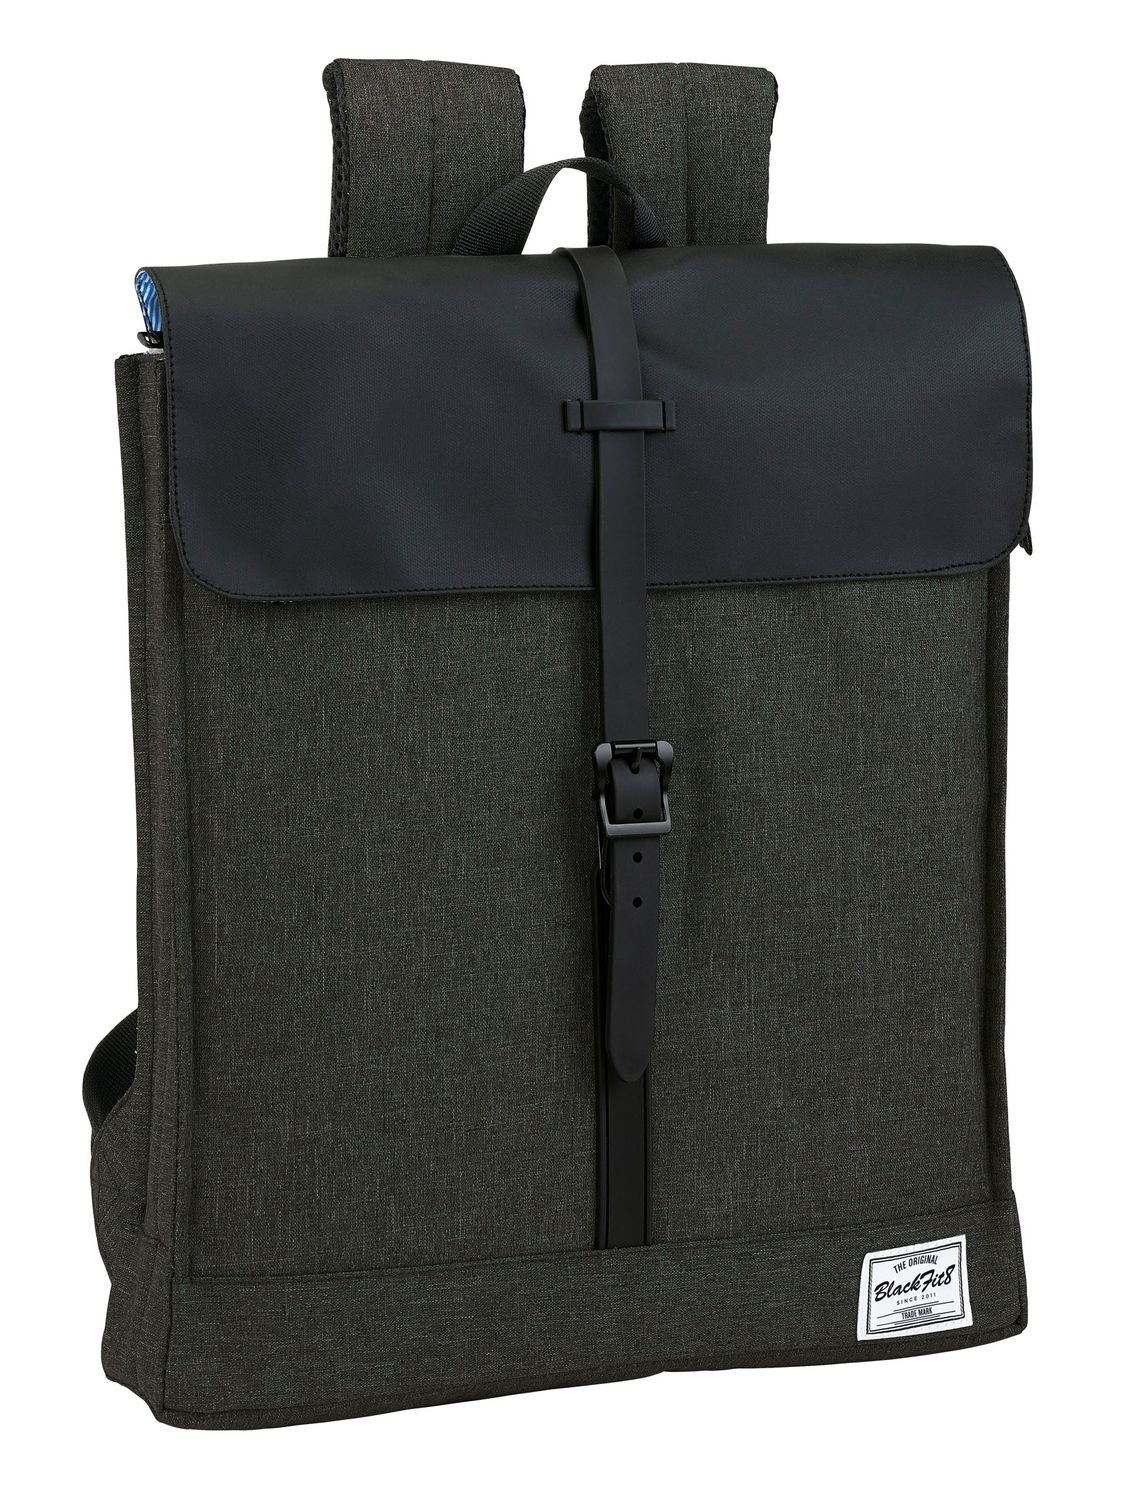 "Blackfit Black & Black Laptop Backpack 14.1"" – image 1"